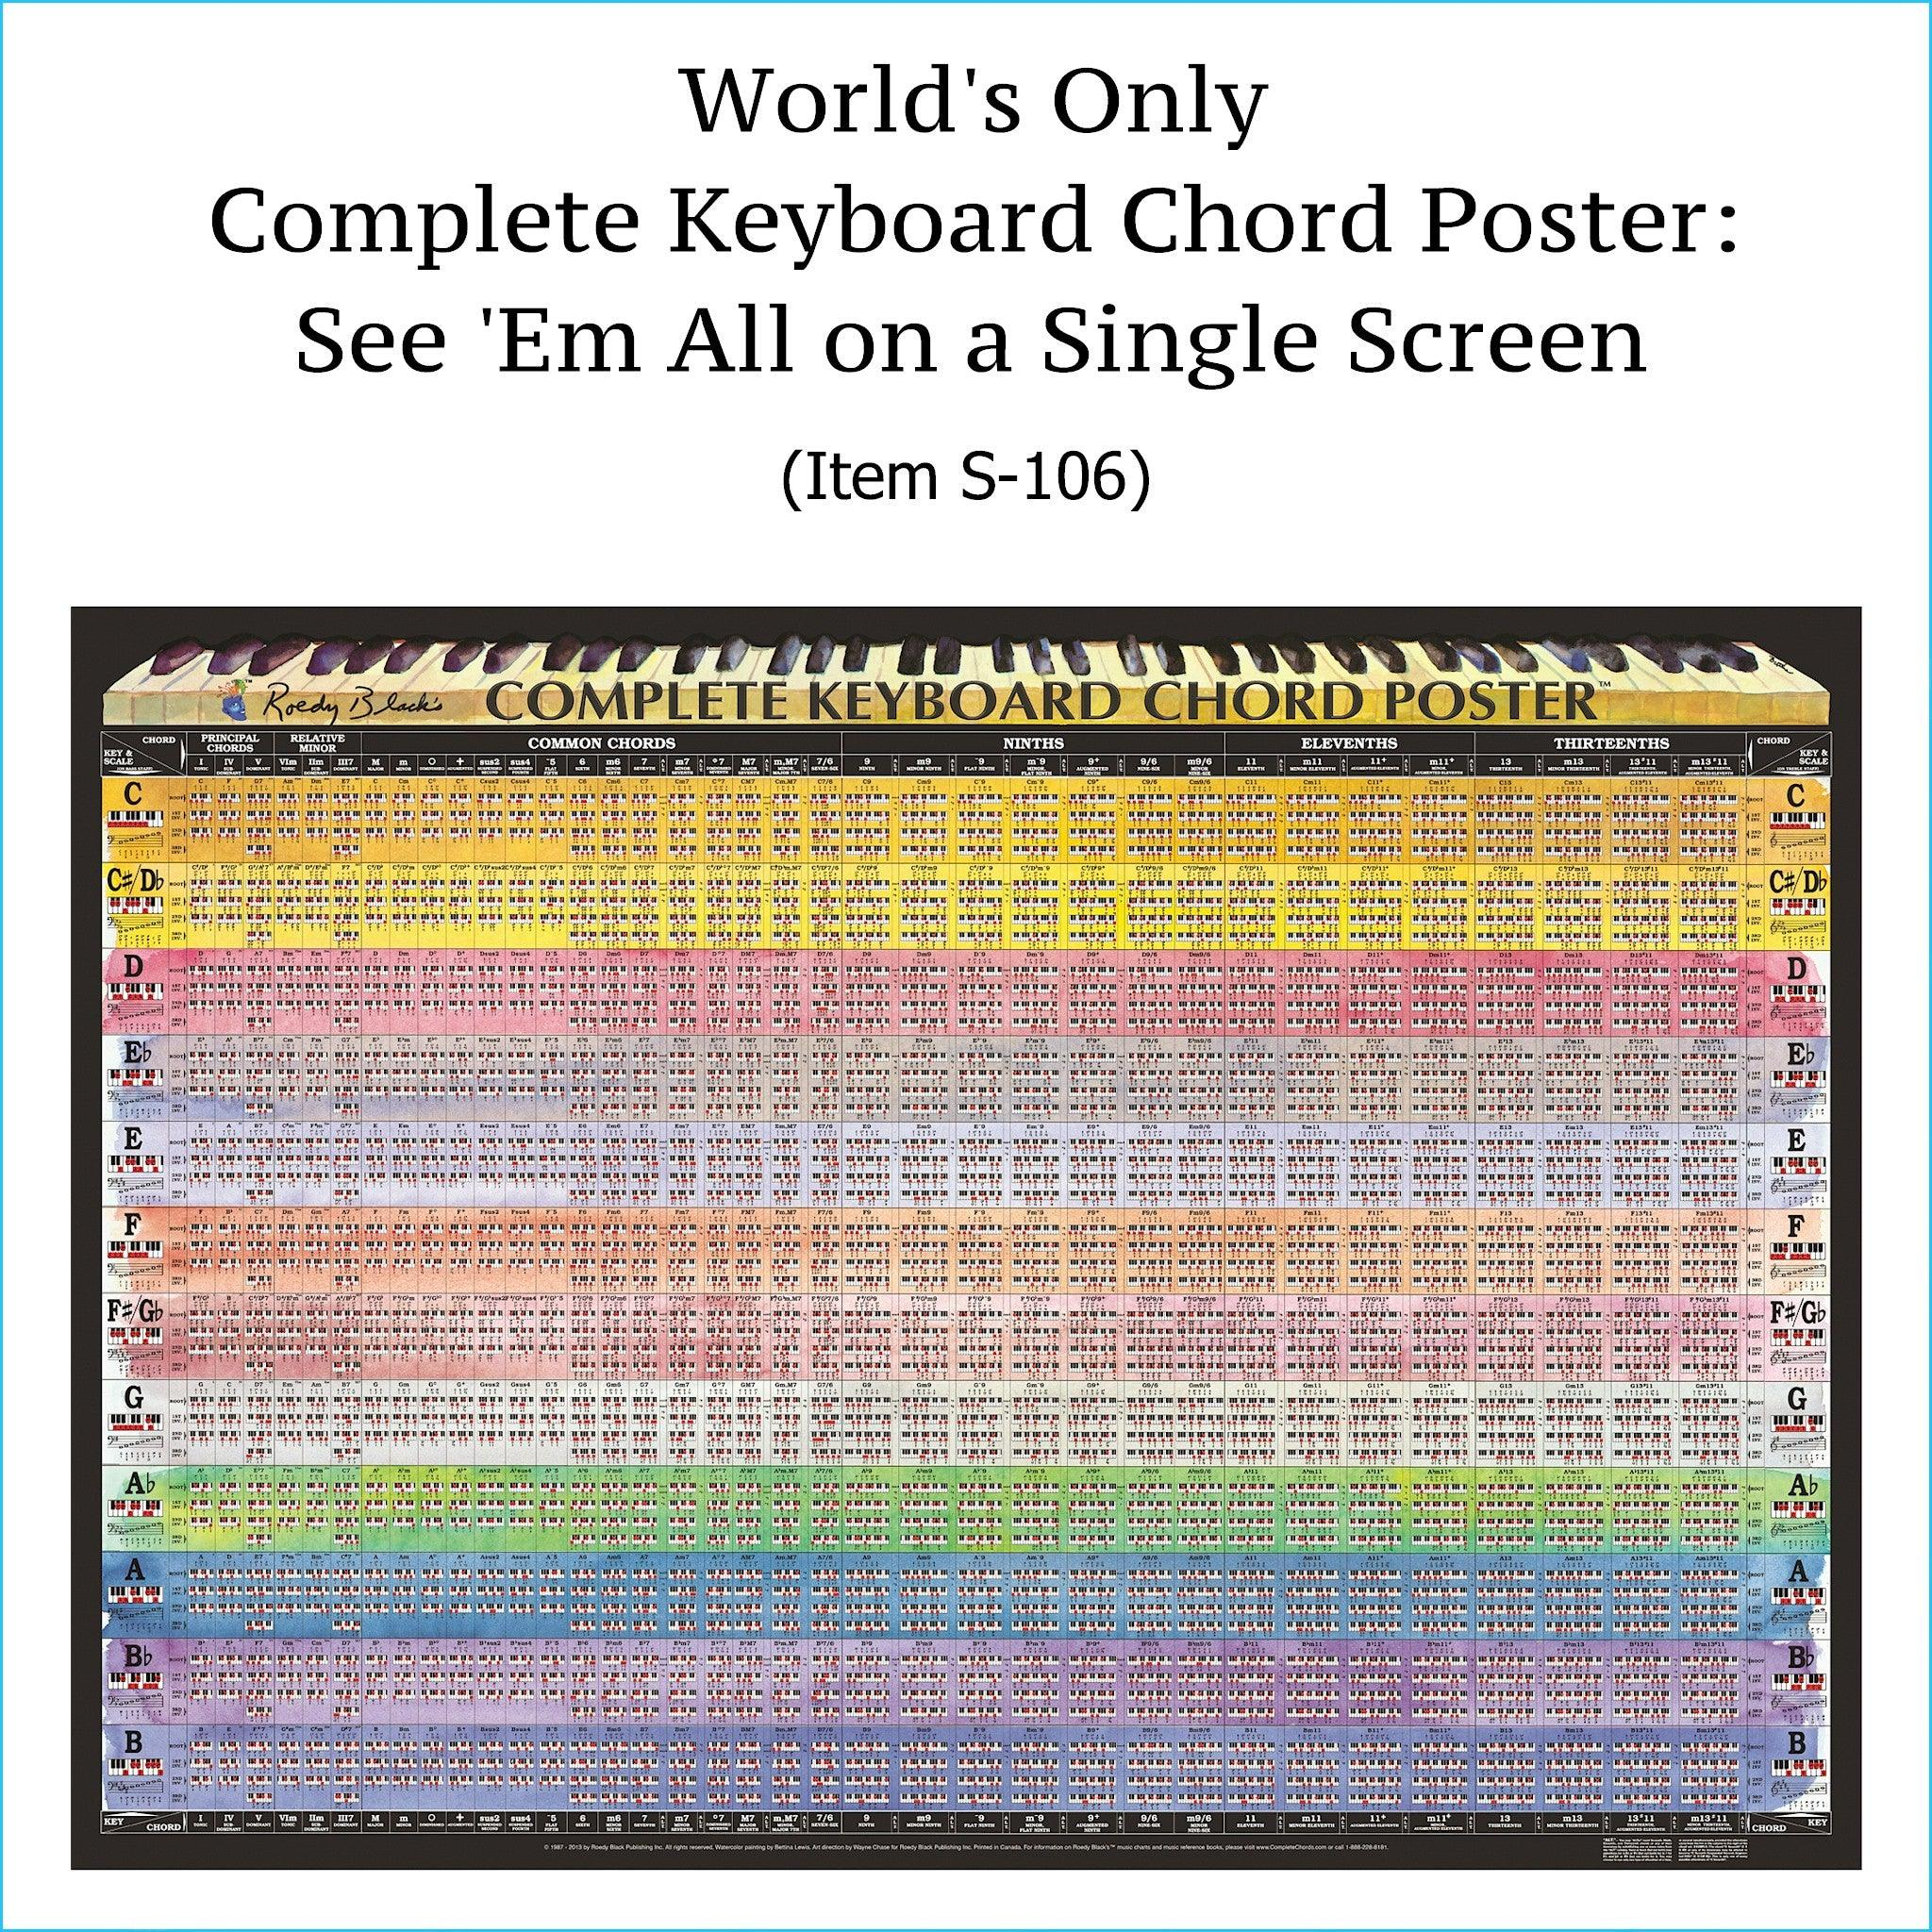 Item S-106: Enjoy Easy Access to EVERY Keyboard/Piano Chord on a SINGLE  Screen or Wall Poster! Our PRINTABLE